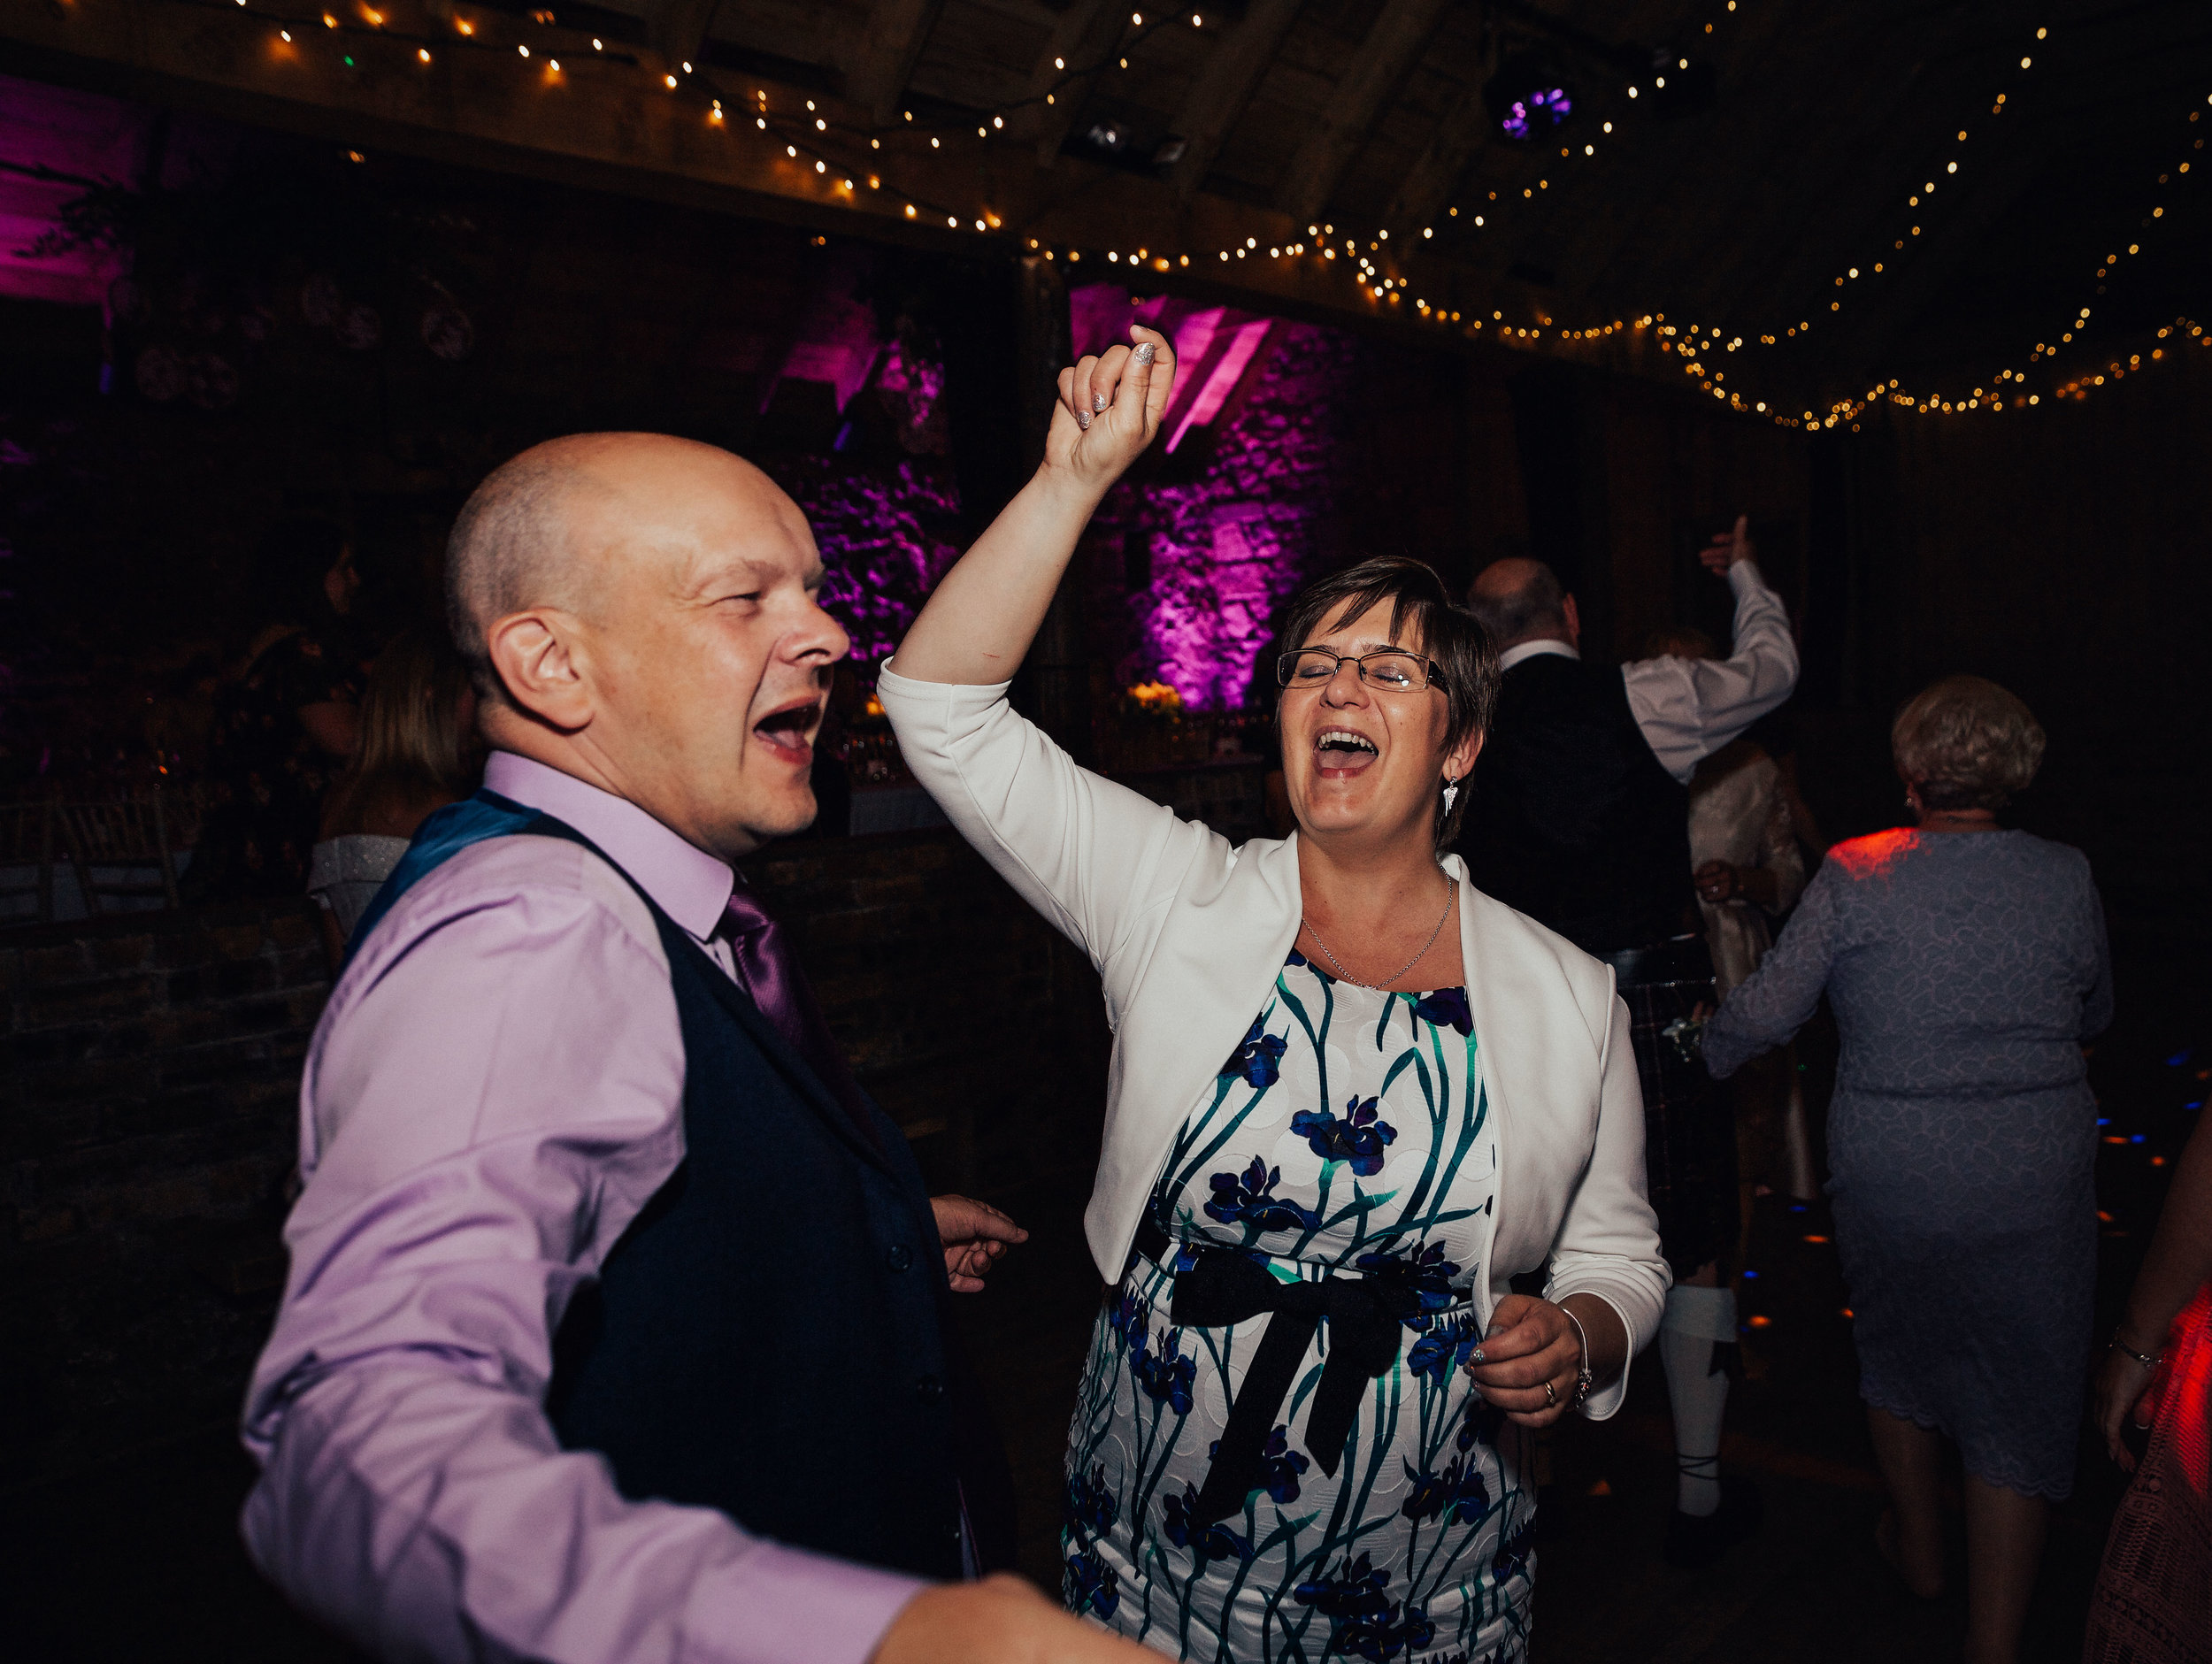 BYRE_AT_INCHYRA_WEDDING_PHOTOGRAPHER_PJ_PHILLIPS_PHOTOGRAPHY_KAYLEIGH_ANDREW_171.jpg